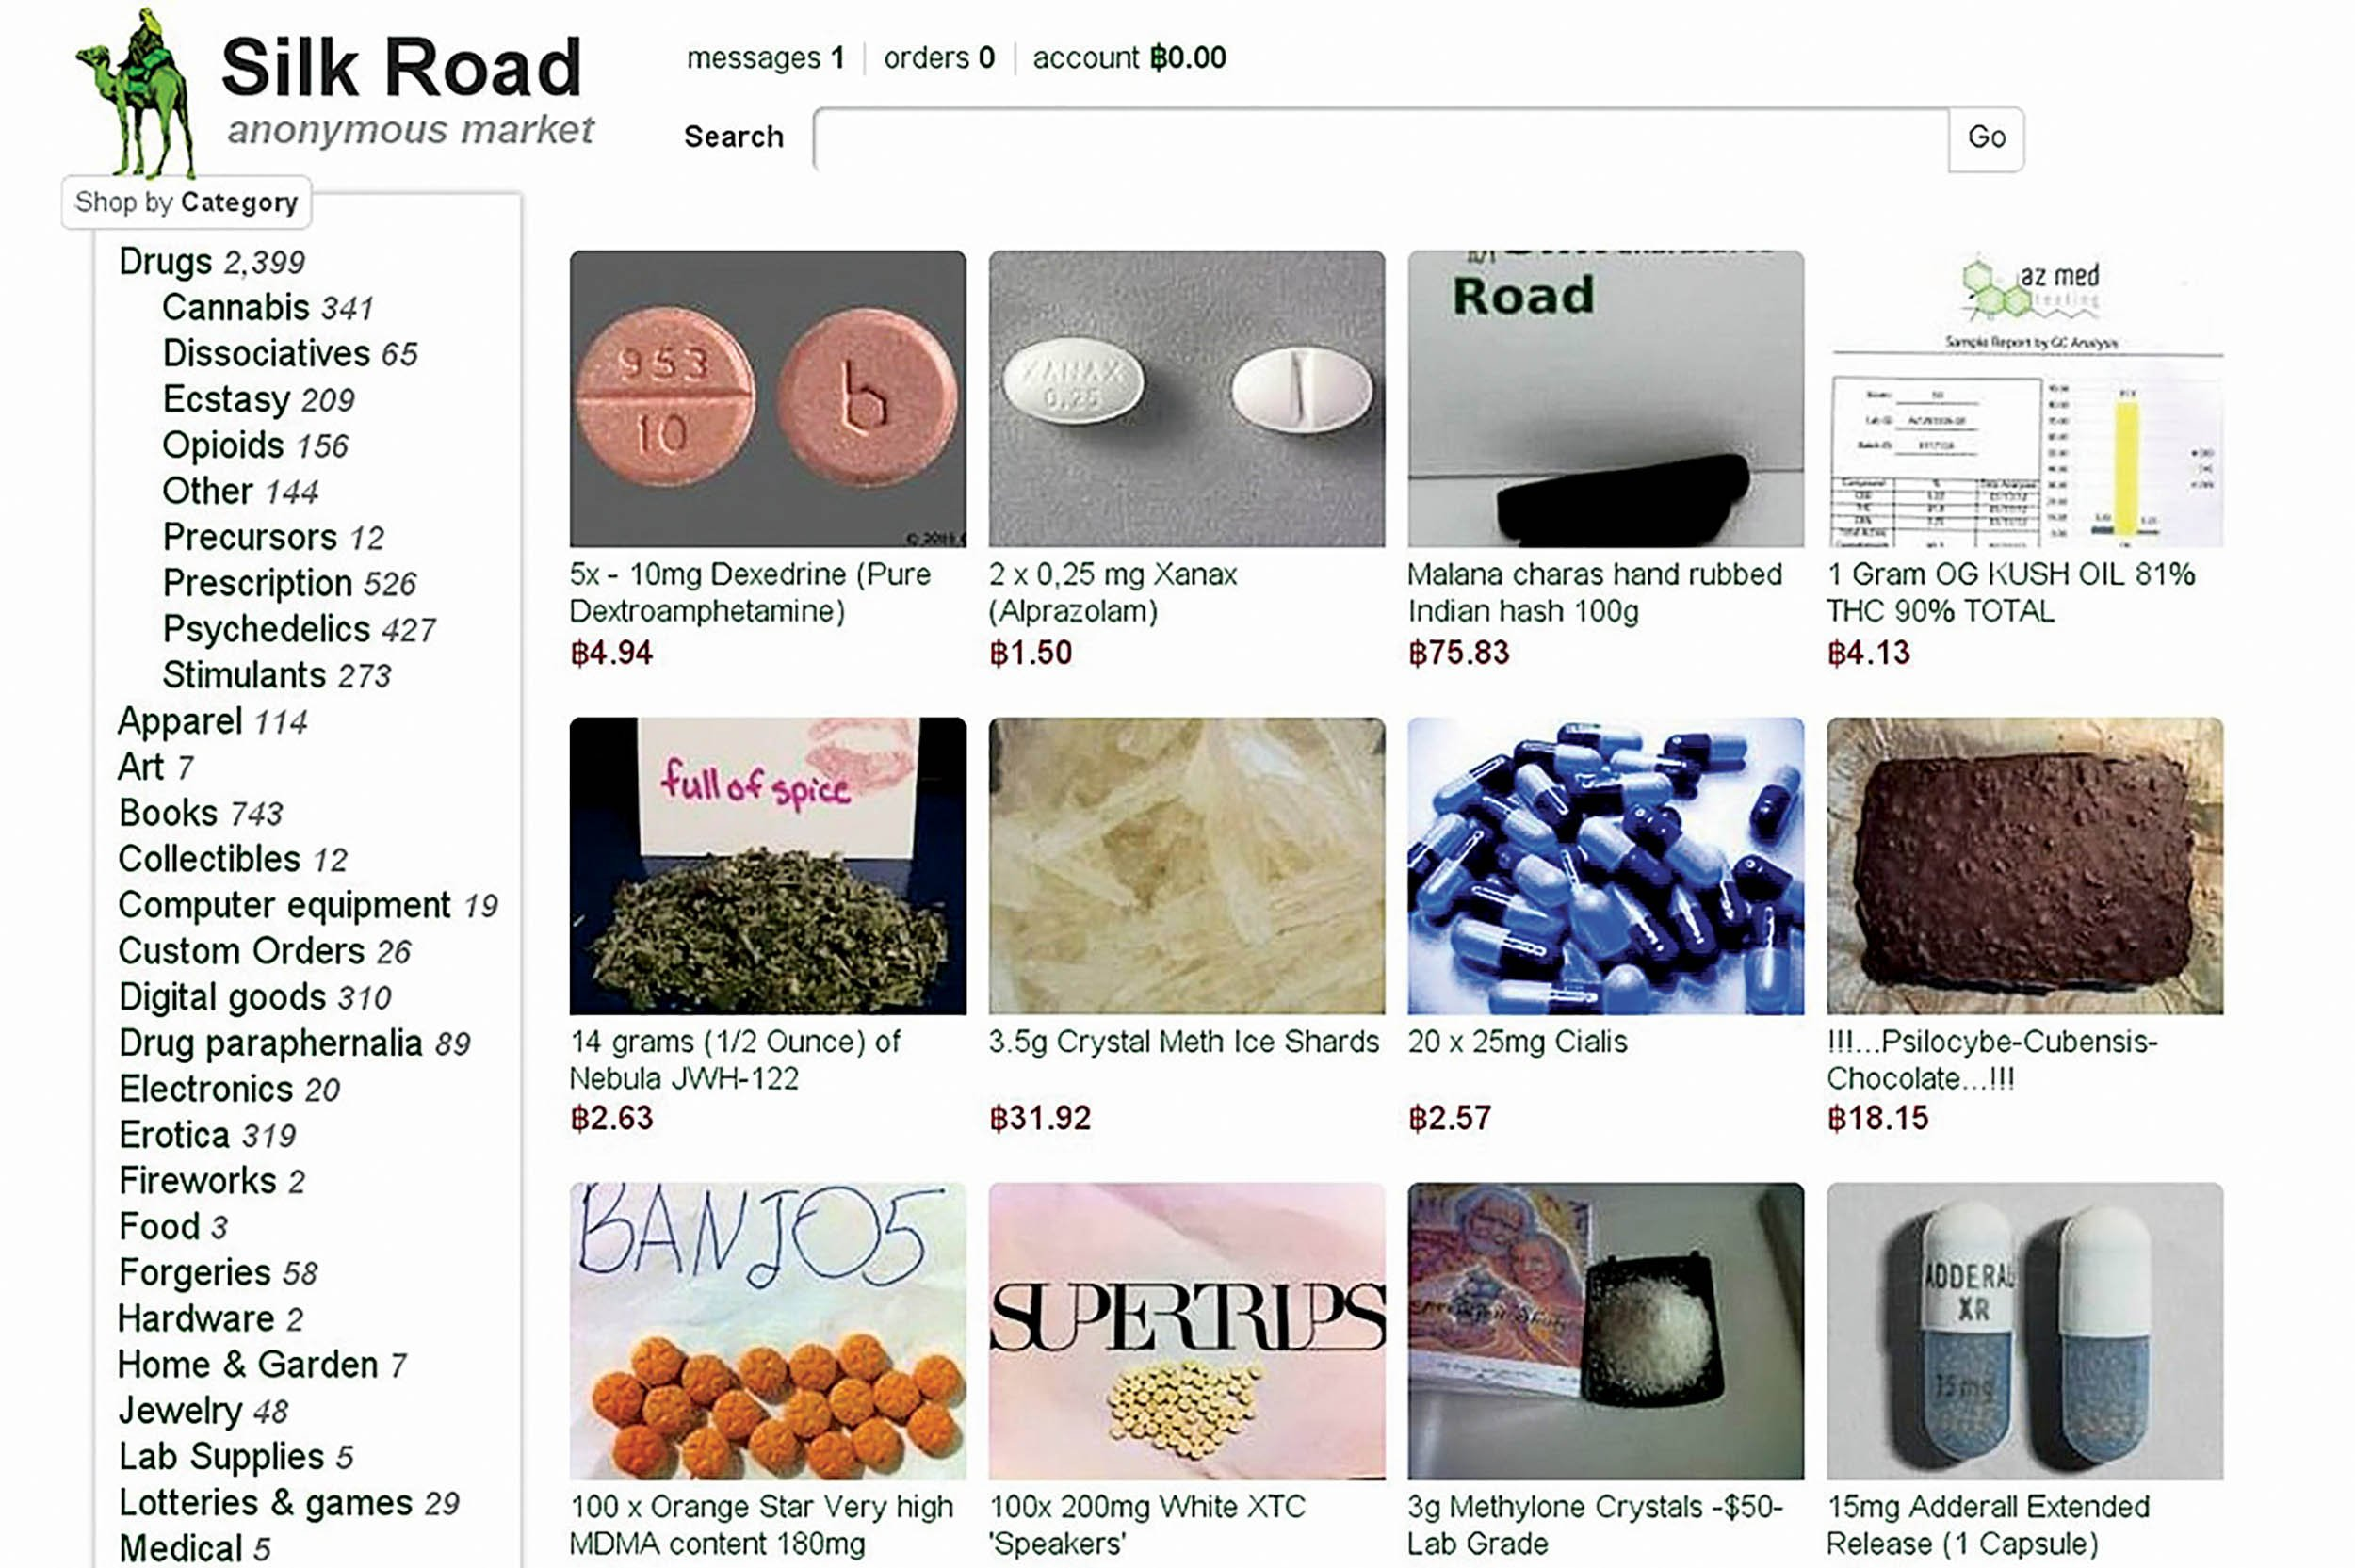 The Rise and Fall of Silk Road, the Dark Web's Amazon